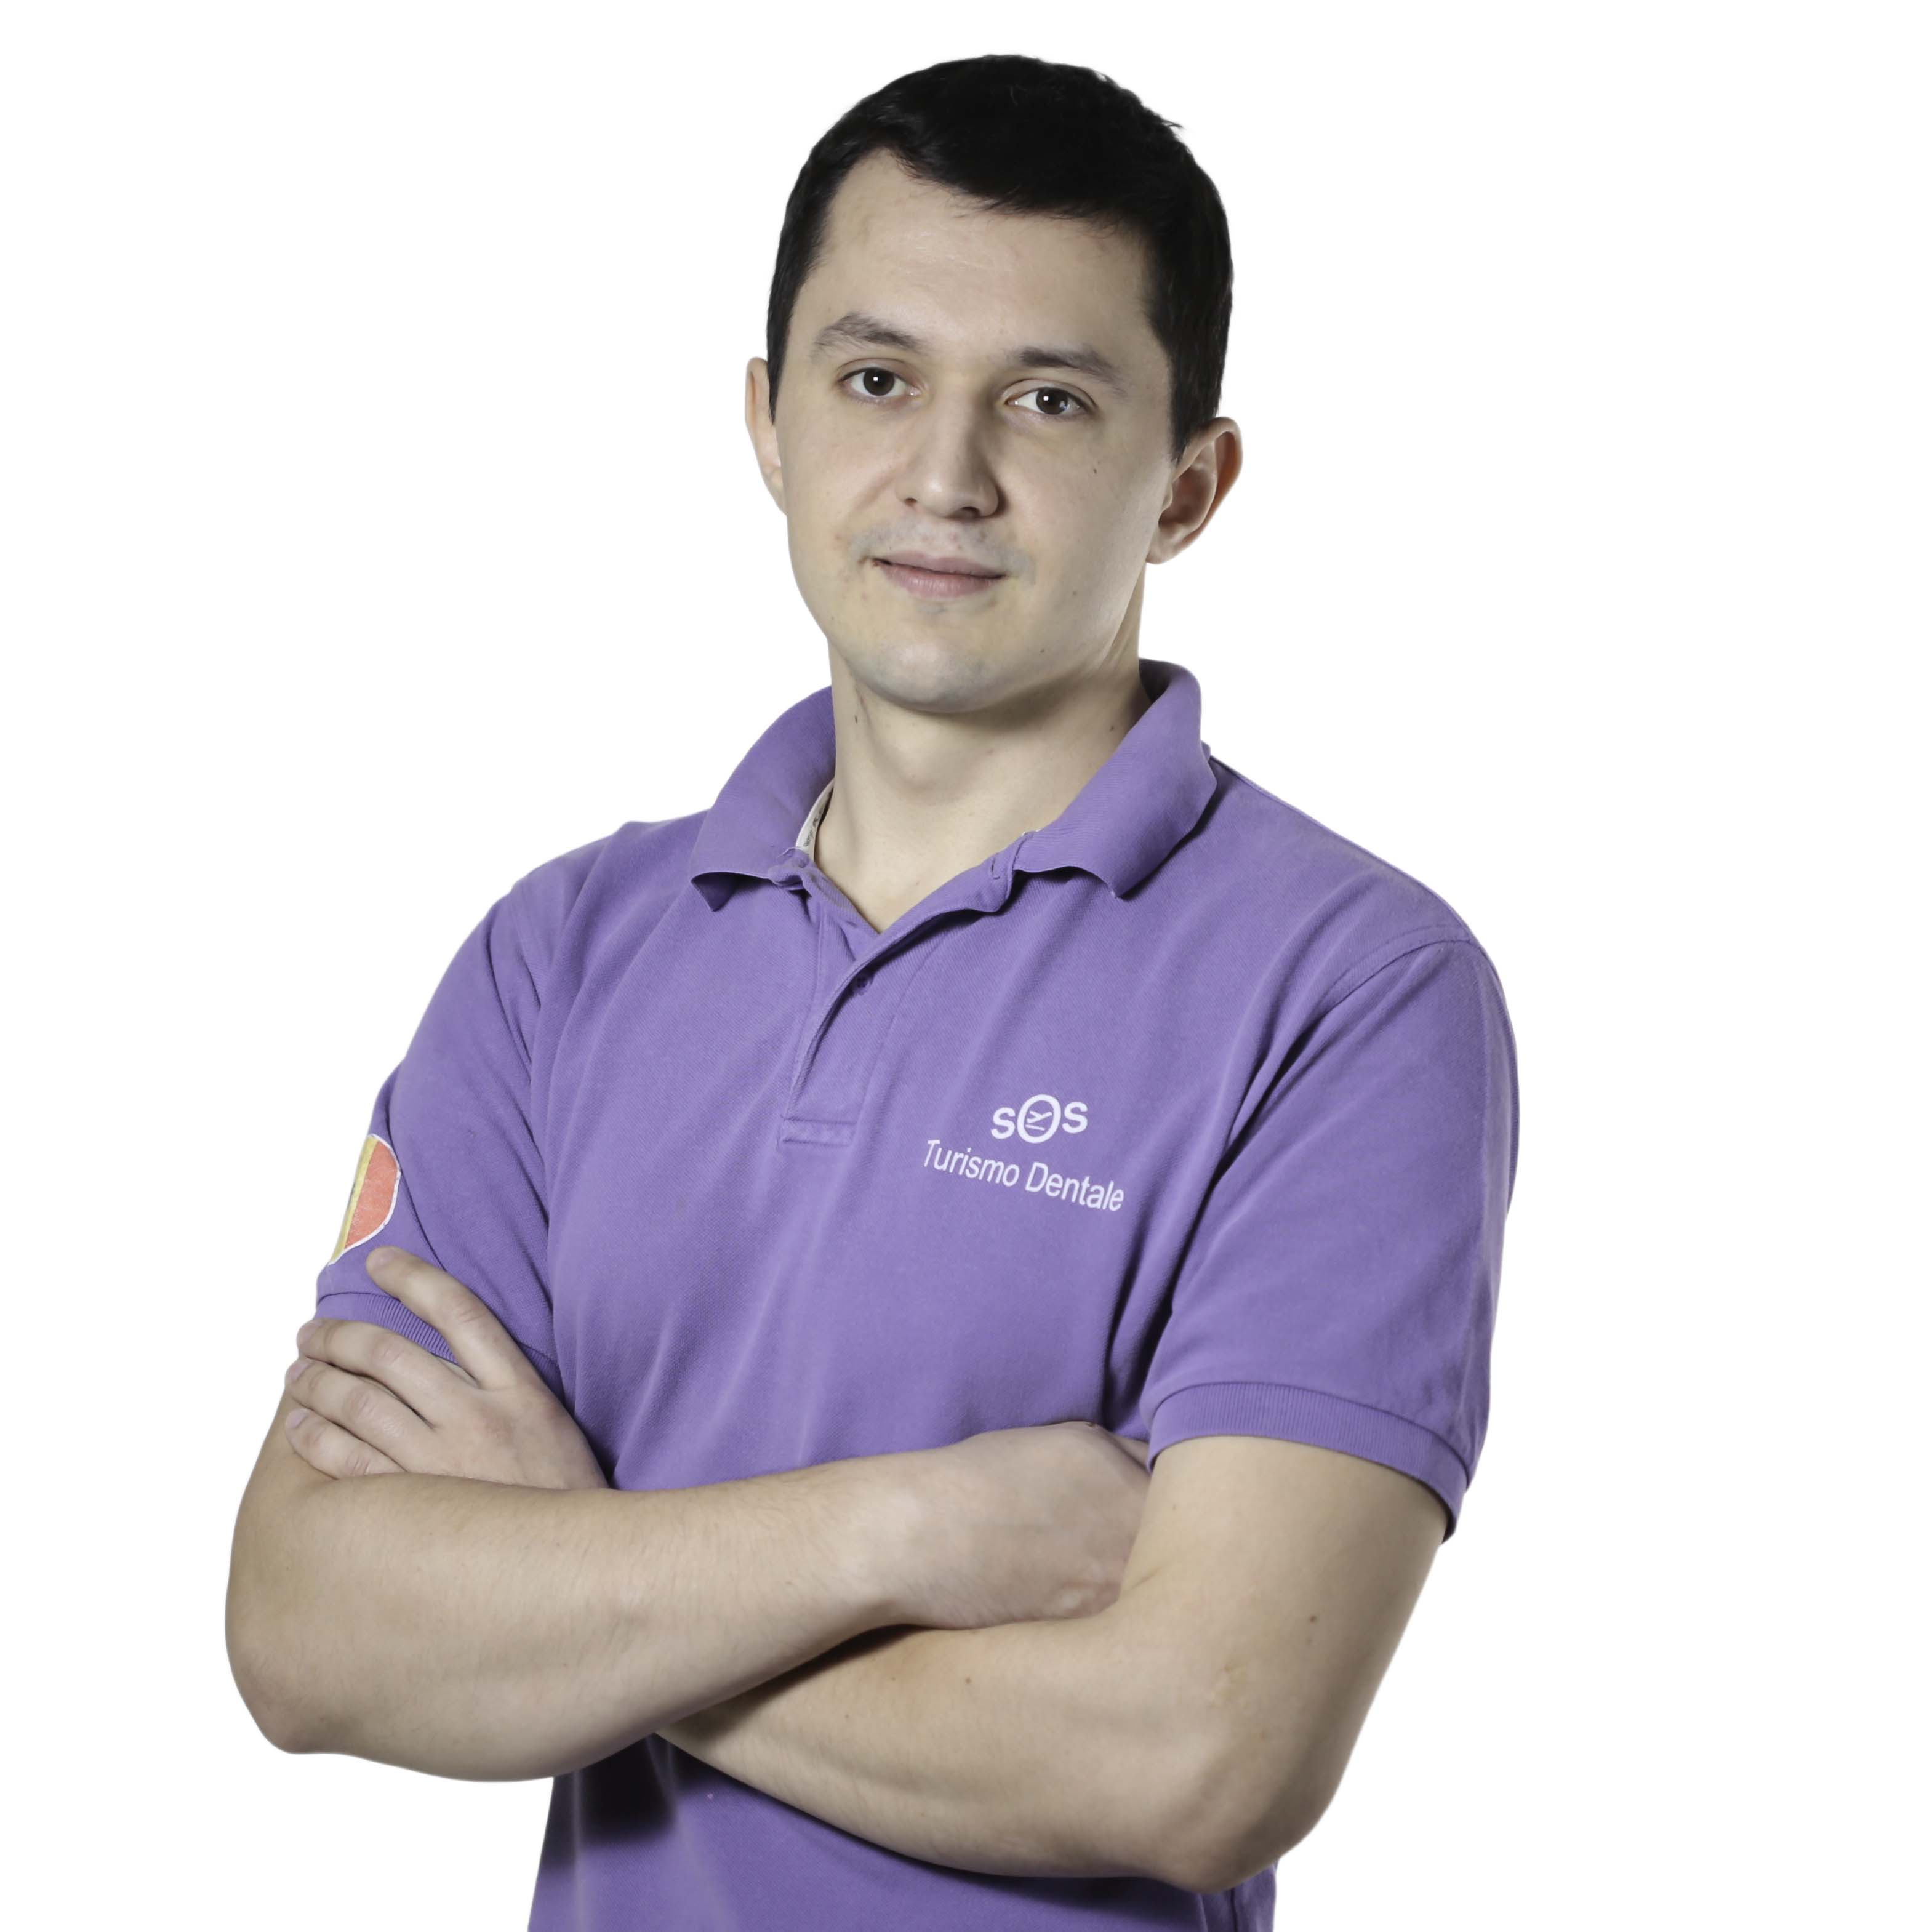 Dr. Andrei